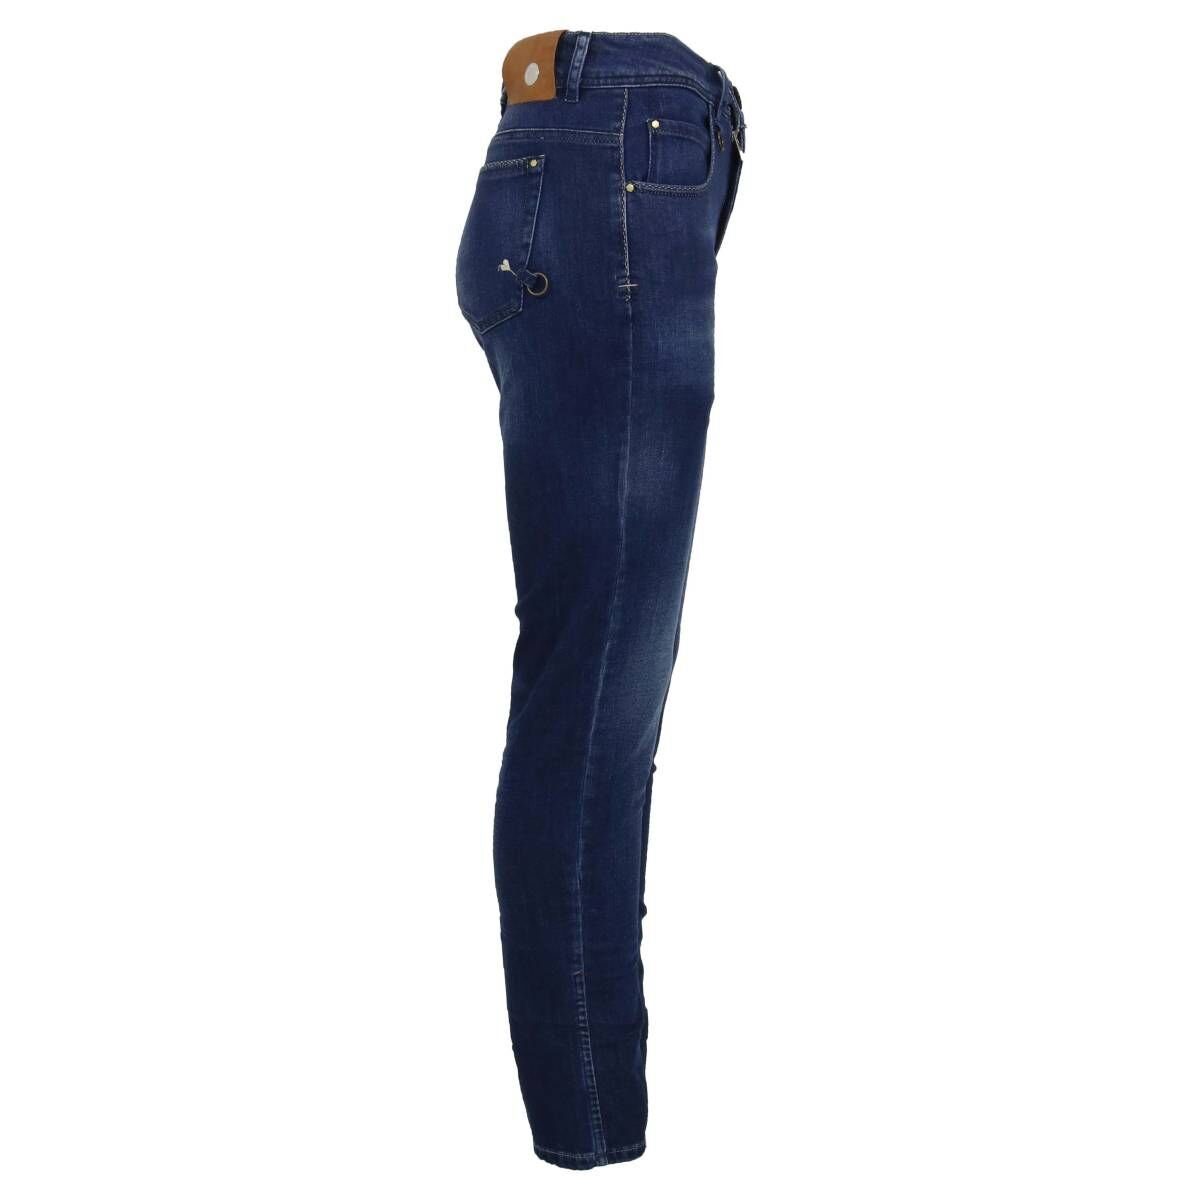 High trousers OUR-GIRLS 702228 jeans blue at Penninkhoffashion.com